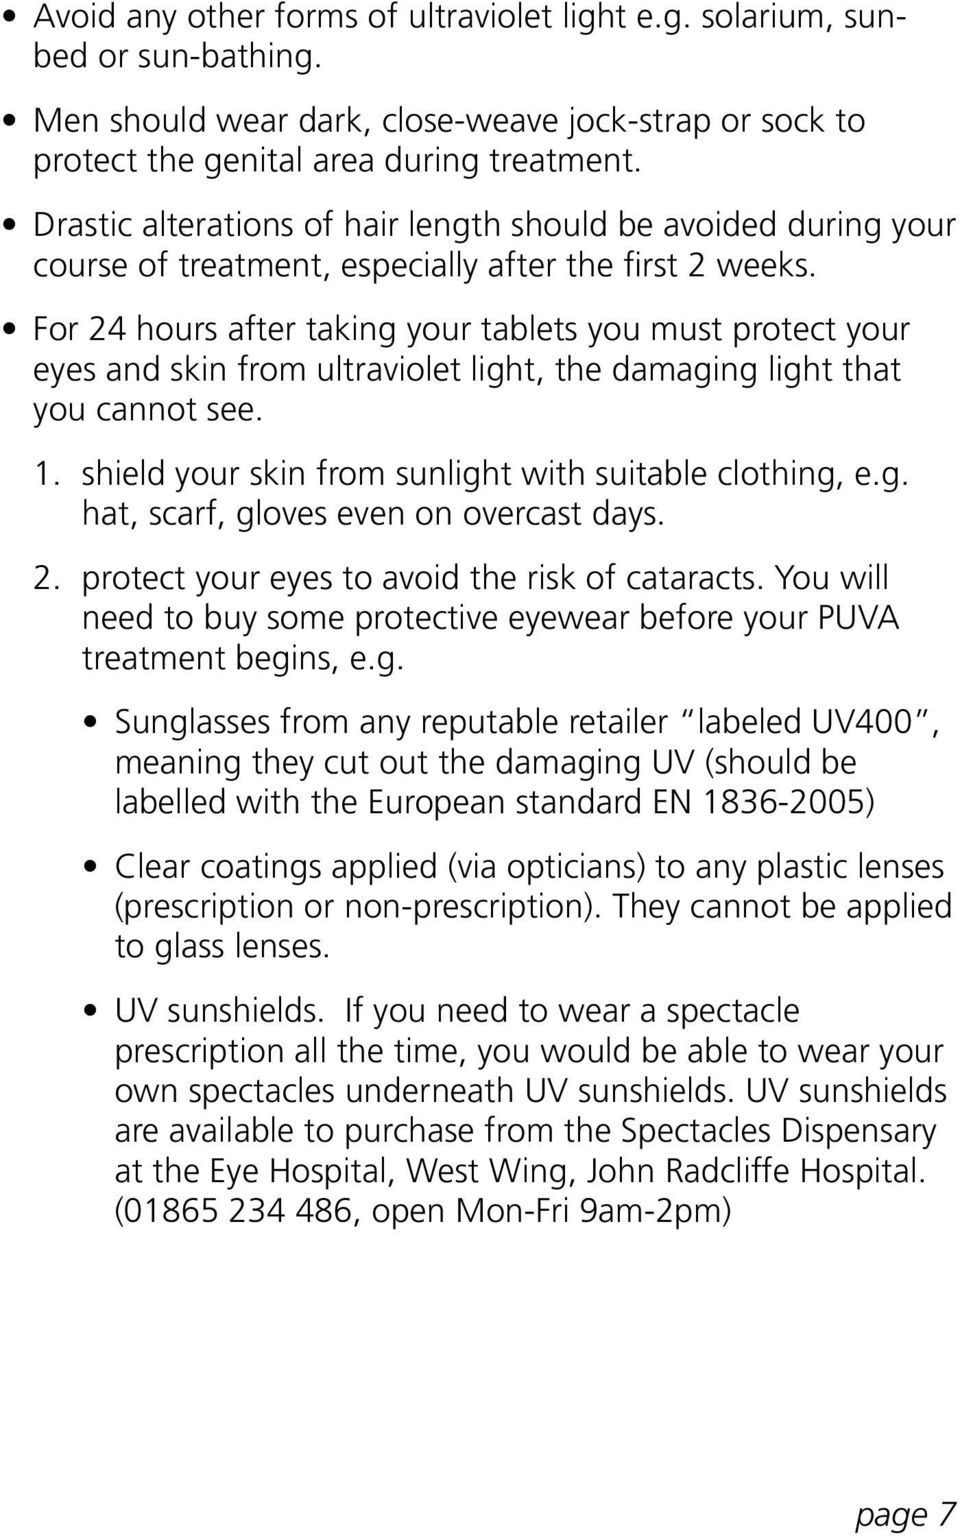 For 24 hours after taking your tablets you must protect your eyes and skin from ultraviolet light, the damaging light that you cannot see. 1. shield your skin from sunlight with suitable clothing, e.